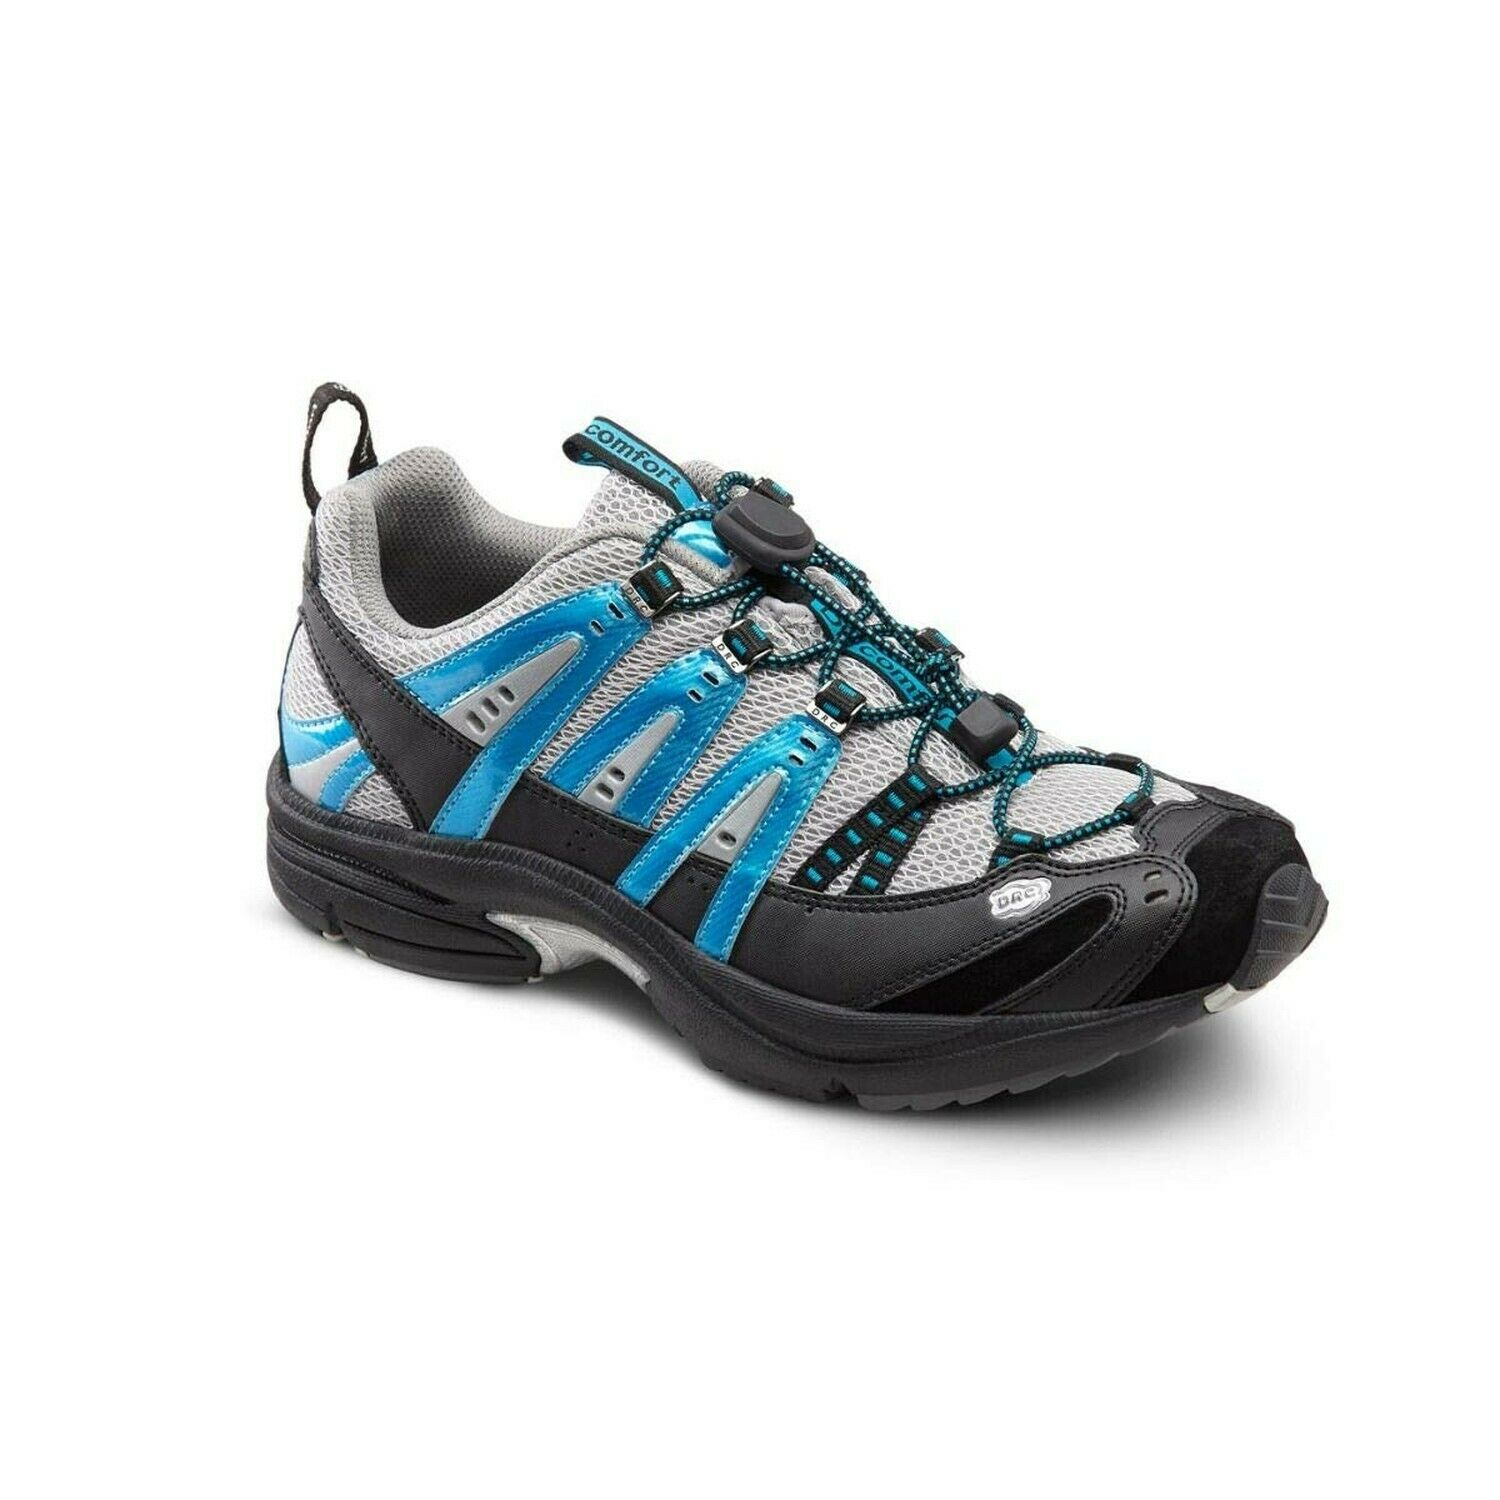 Dr. Comfort Performance Men's Therapeutic Athletic shoes  Metallic bluee 9.5 Wi...